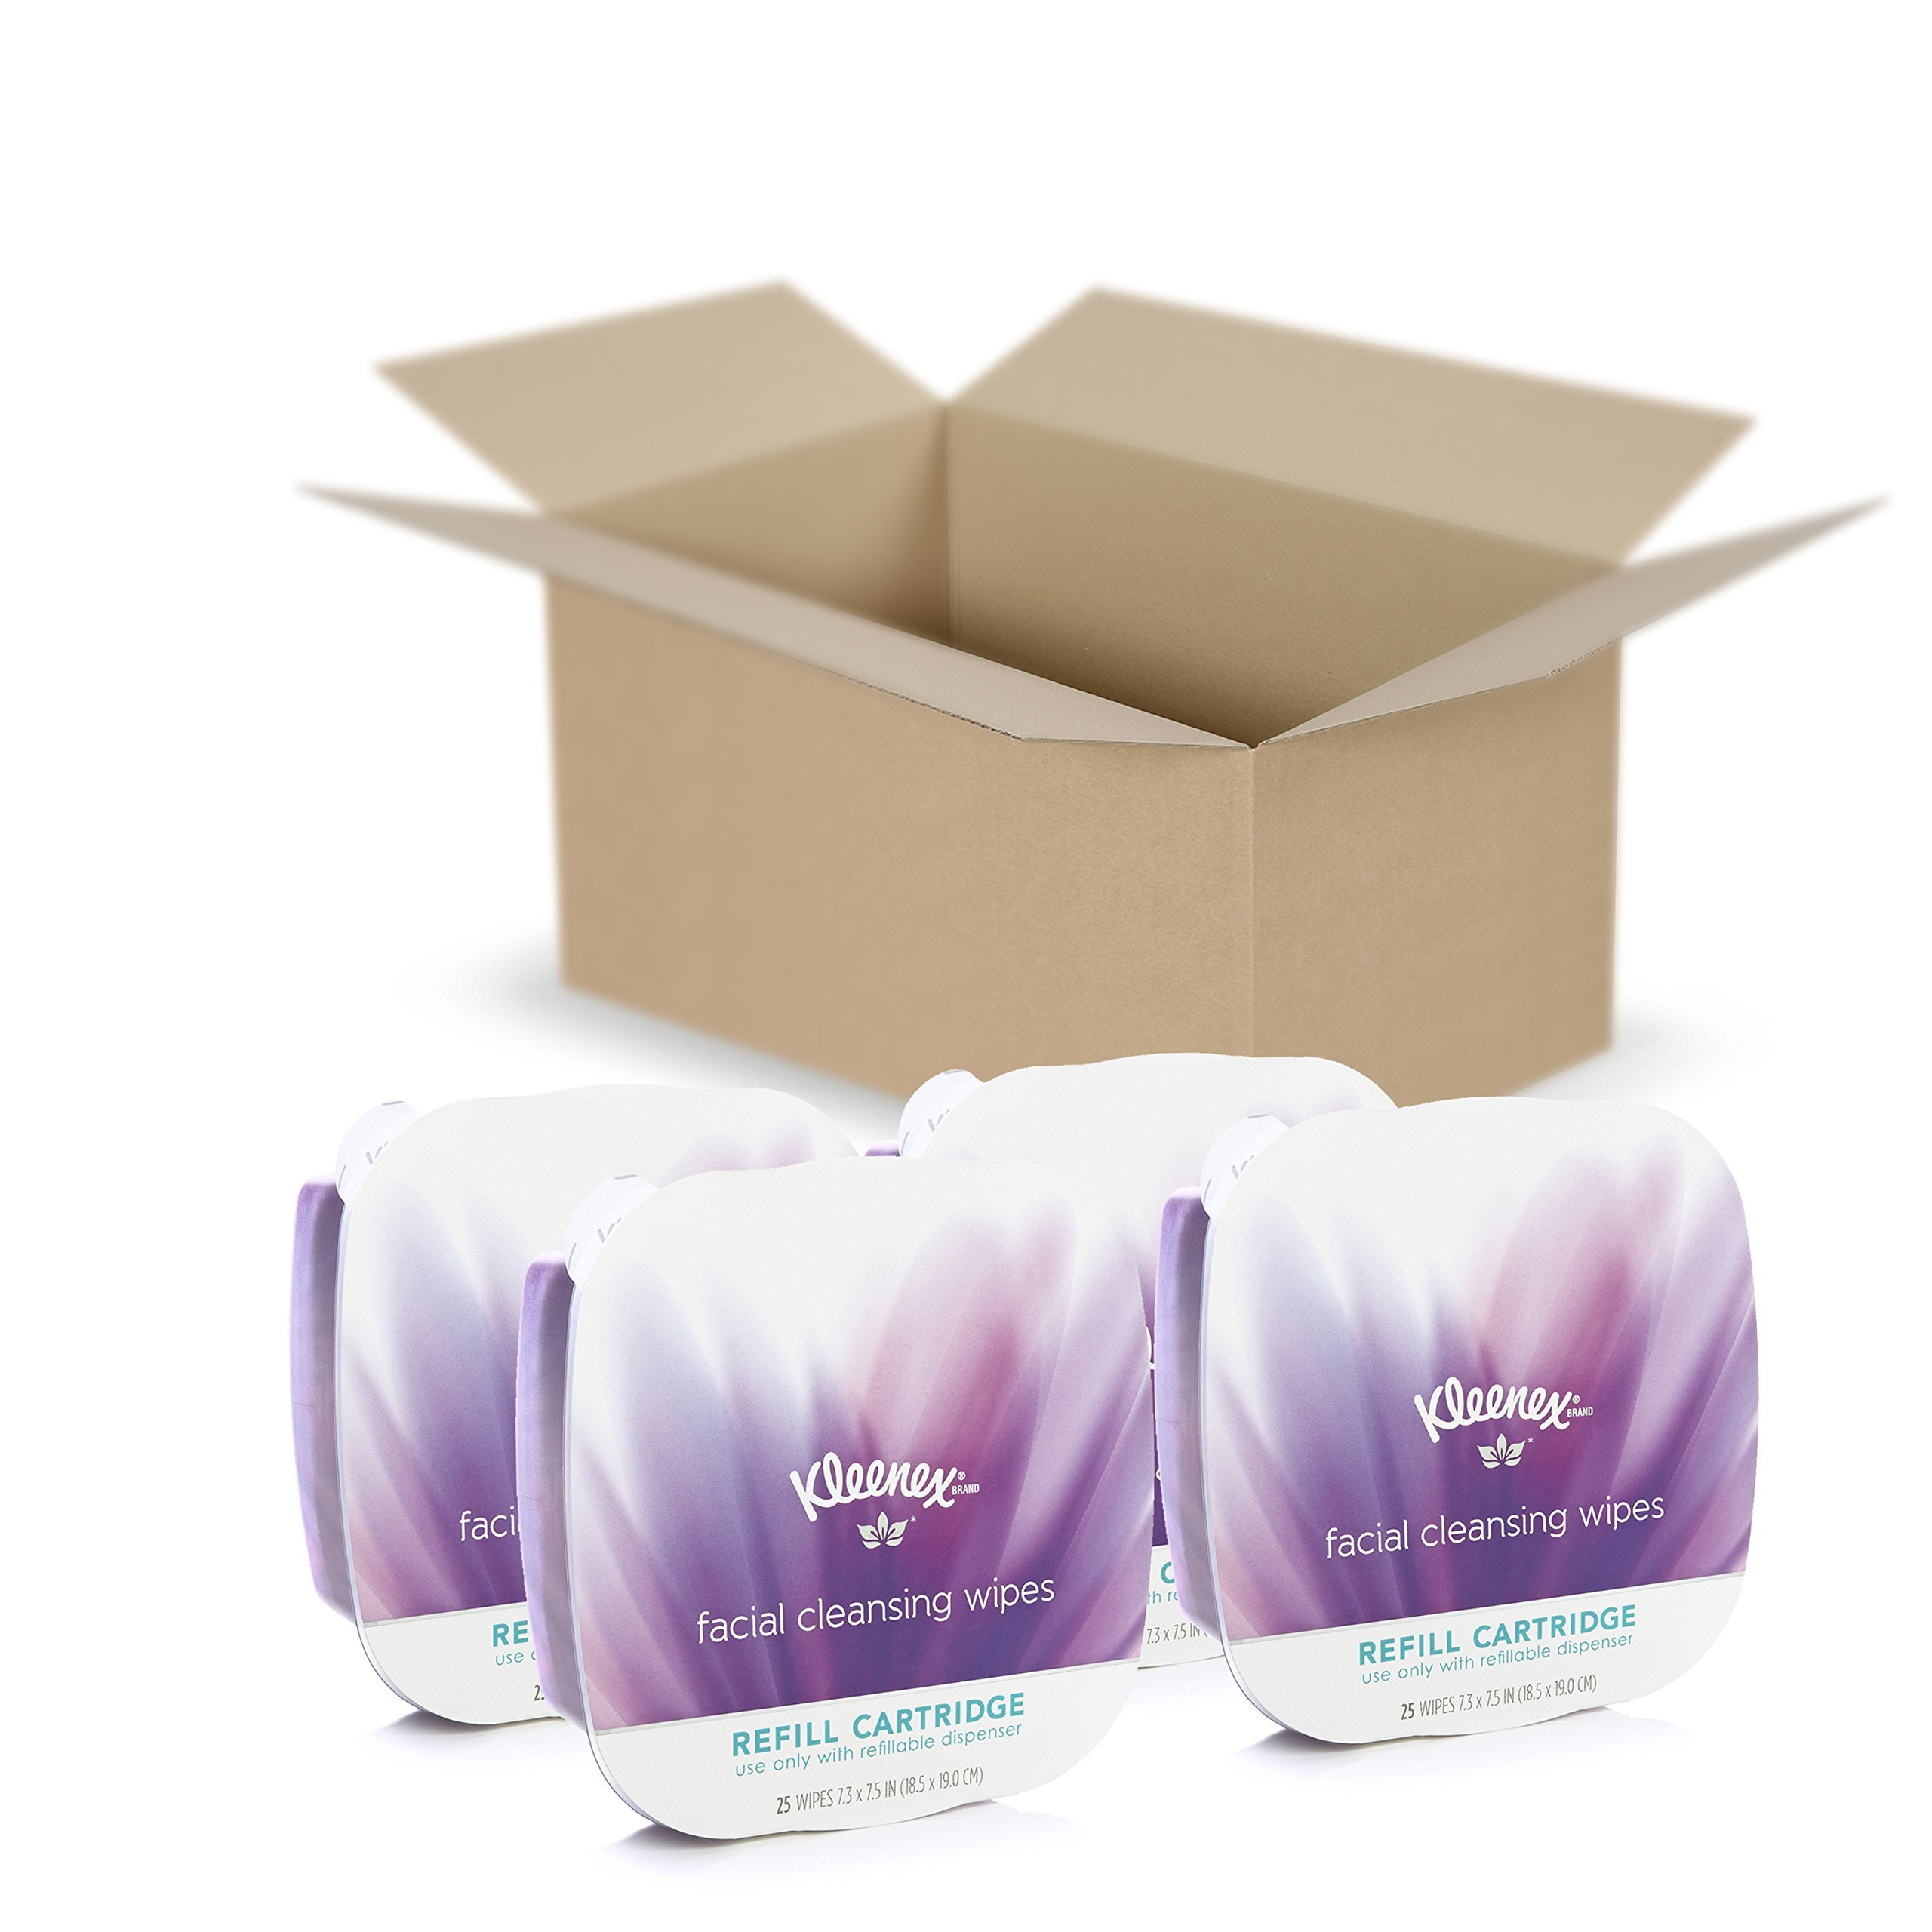 Kleenex Facial Cleansing & Makeup Remover Wipes, 4 Refills, 25 Wet Wipes Per Pack (100 Face Wipes Total)